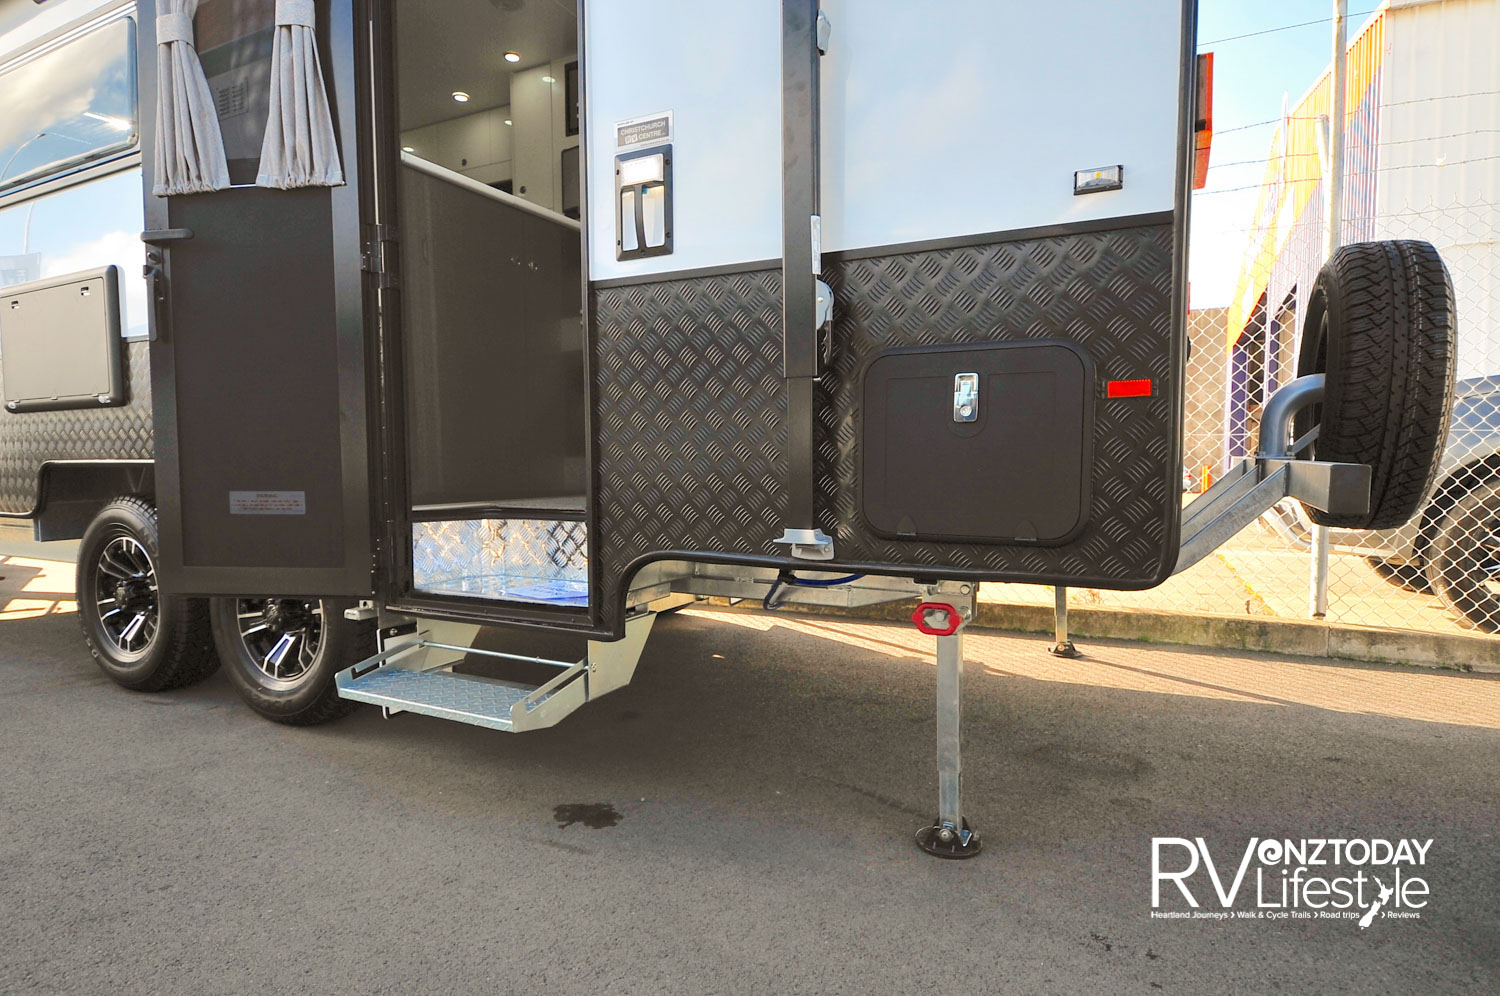 Manual entry step-up to recessed internal step. Galvanised chassis on a twin-axle structure, sturdy stabilisers, grab handles with light for entry, strong side arms for the wind-out awning, aluminium sides make for a strong off-road package